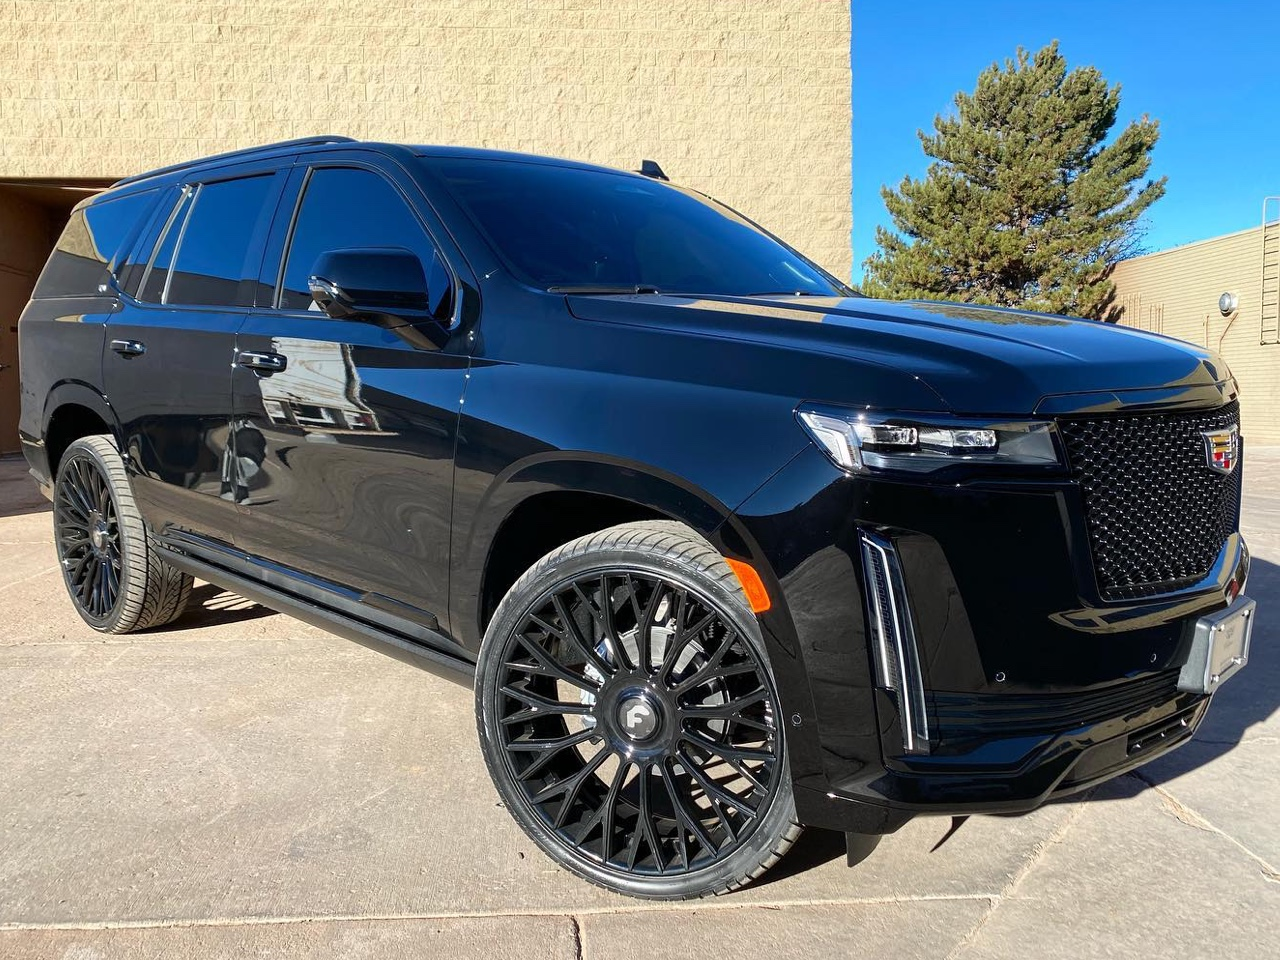 blacked out Cadillac Escalade front view